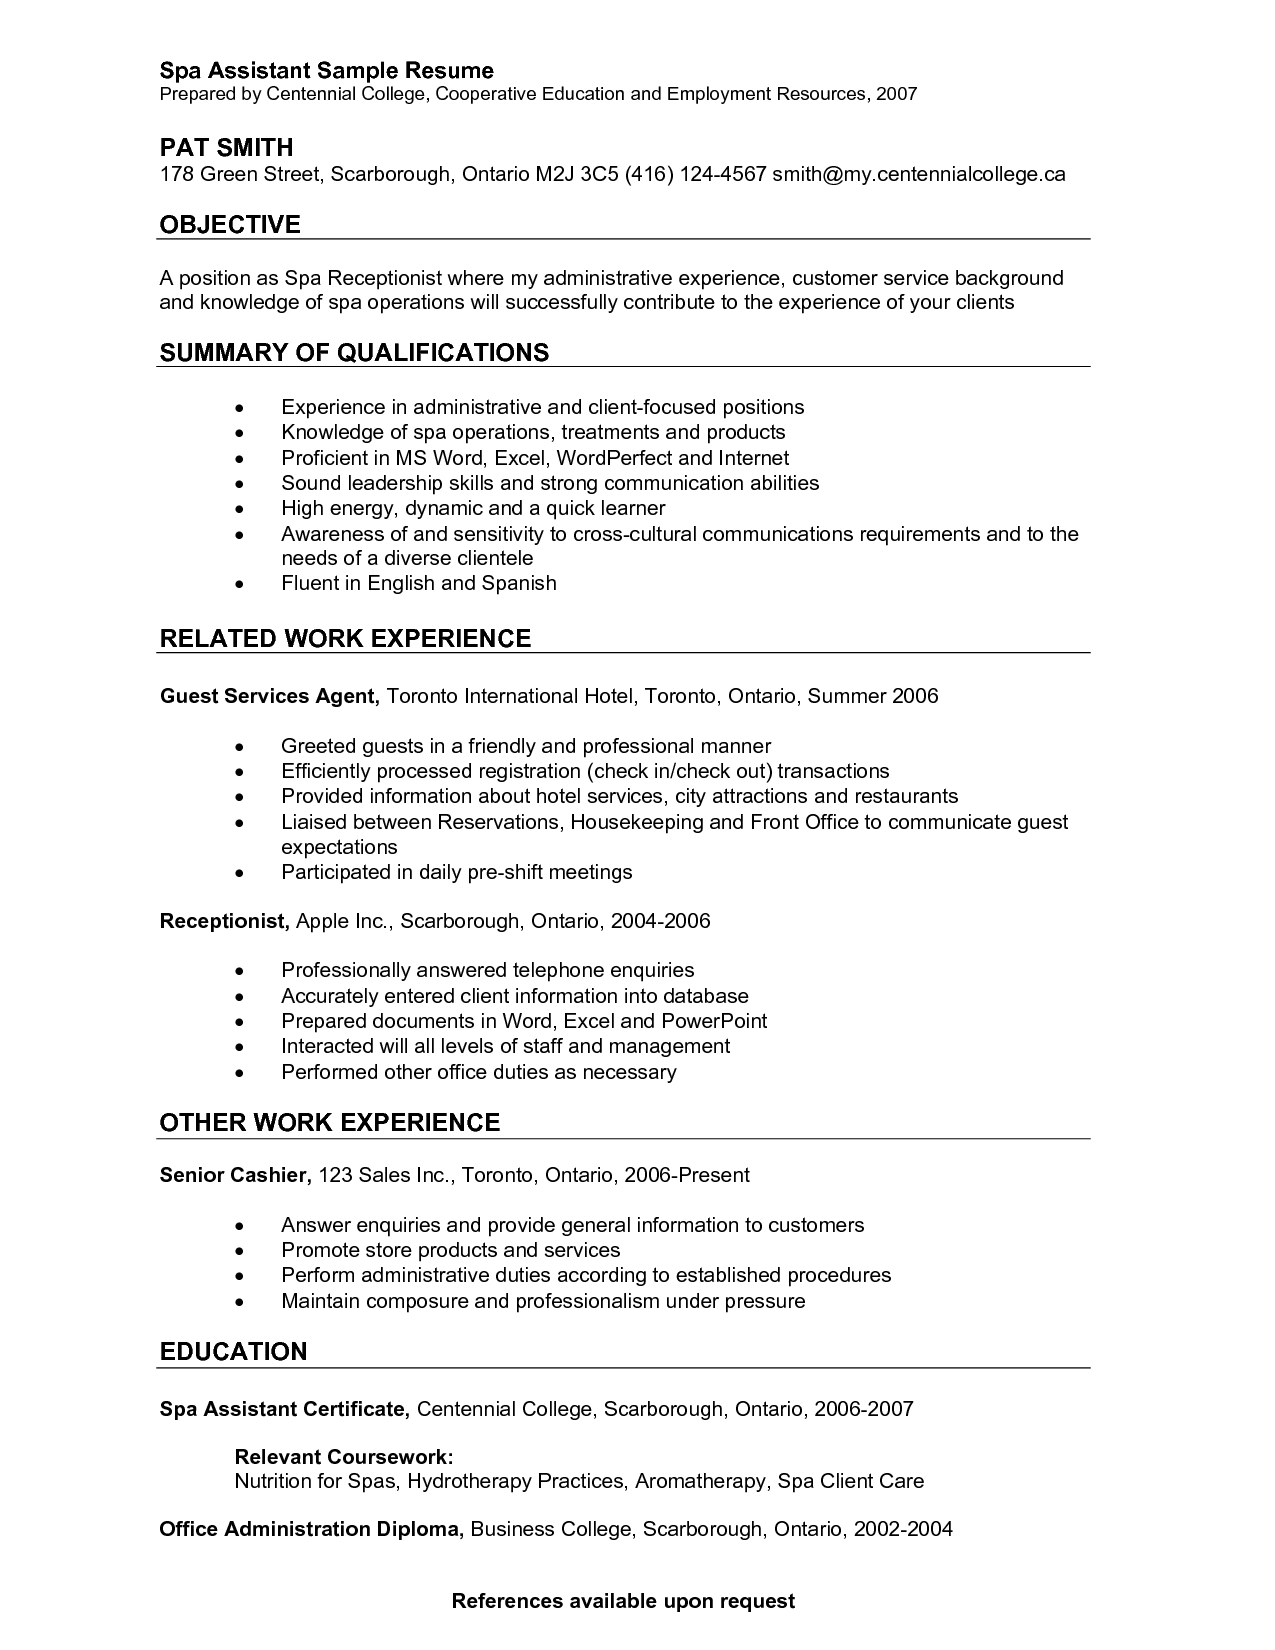 Customer Service Objective For Resume Medical Receptionist Resume Objective Samples  Resume  Pinterest